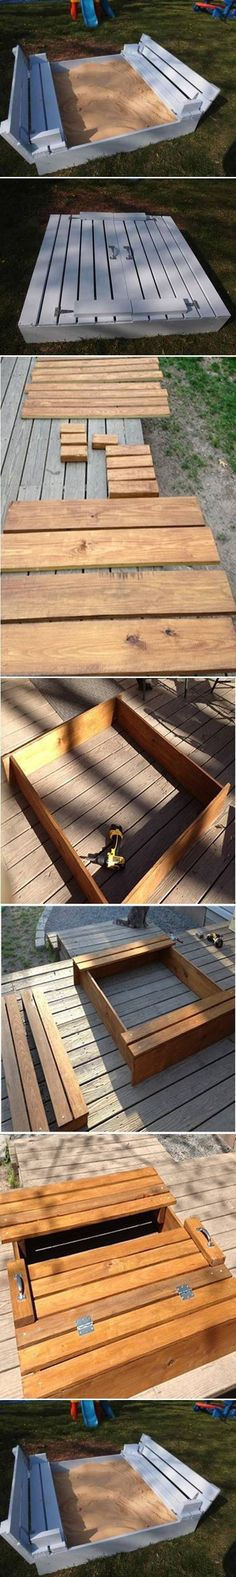 DIY Sandbox converts to benches and keeps out cats! i wanna make it bigger so i can tan in it like im at the beach :P